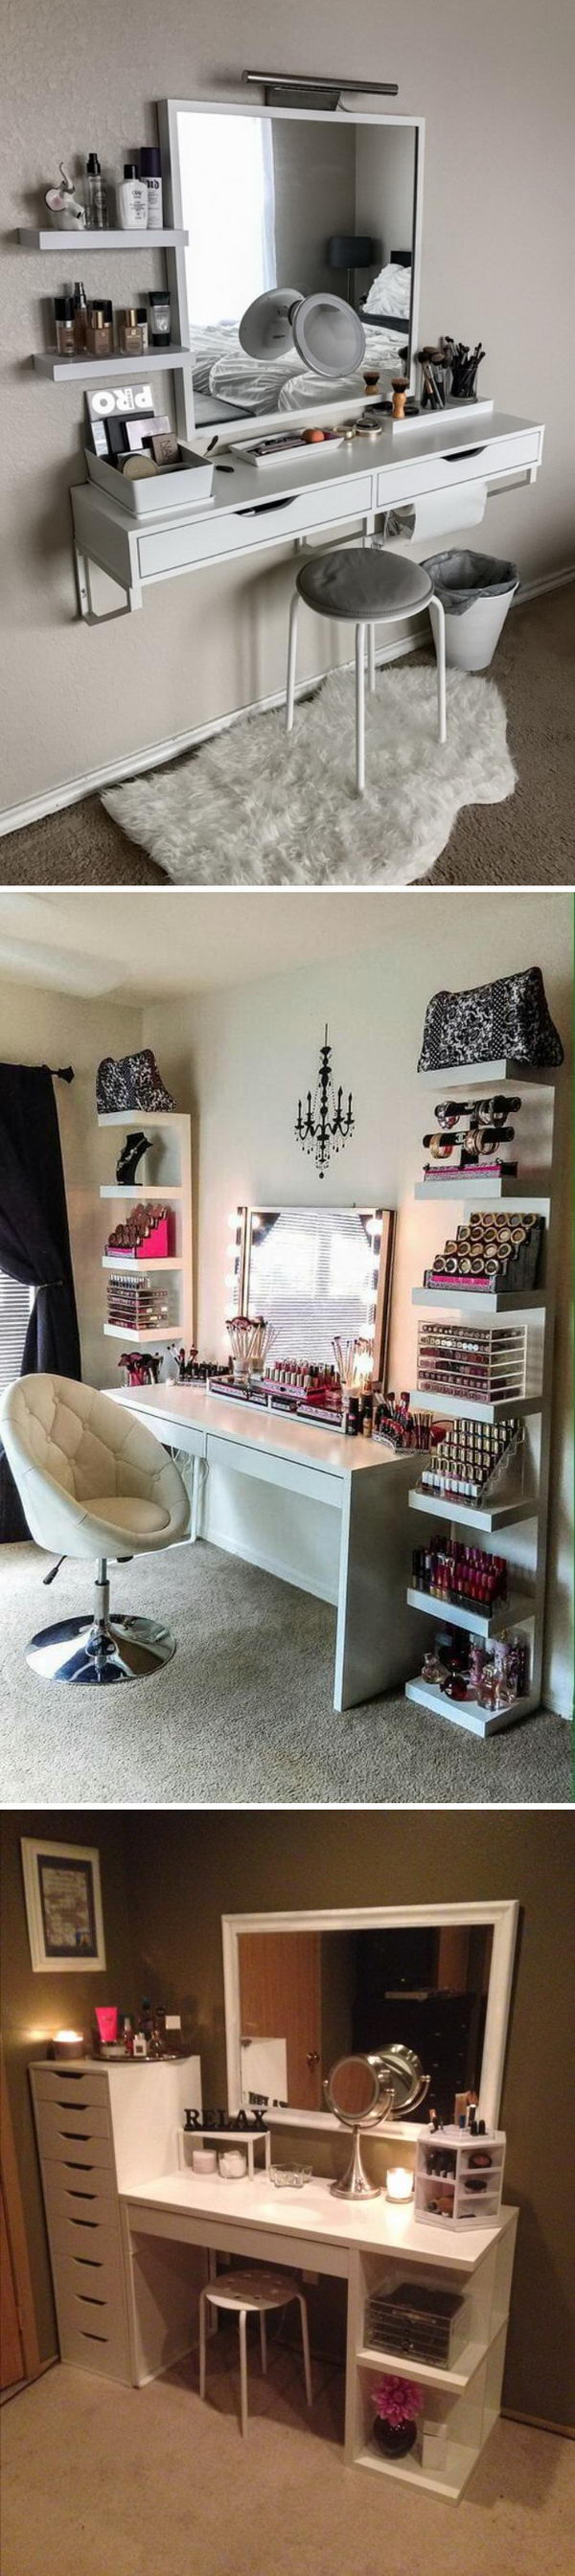 40 Awesome Makeup Storage Designs and DIY Ideas For Girls.